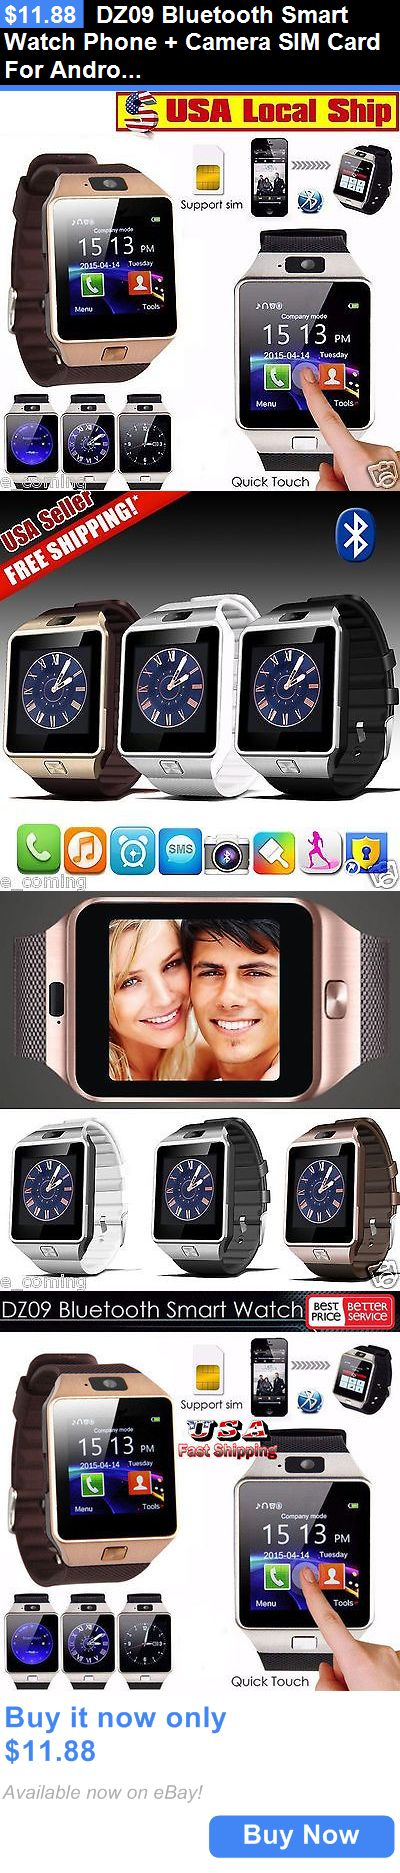 Smart Watches: Dz09 Bluetooth Smart Watch Phone + Camera Sim Card For Android Ios Phones BUY IT NOW ONLY: $11.88